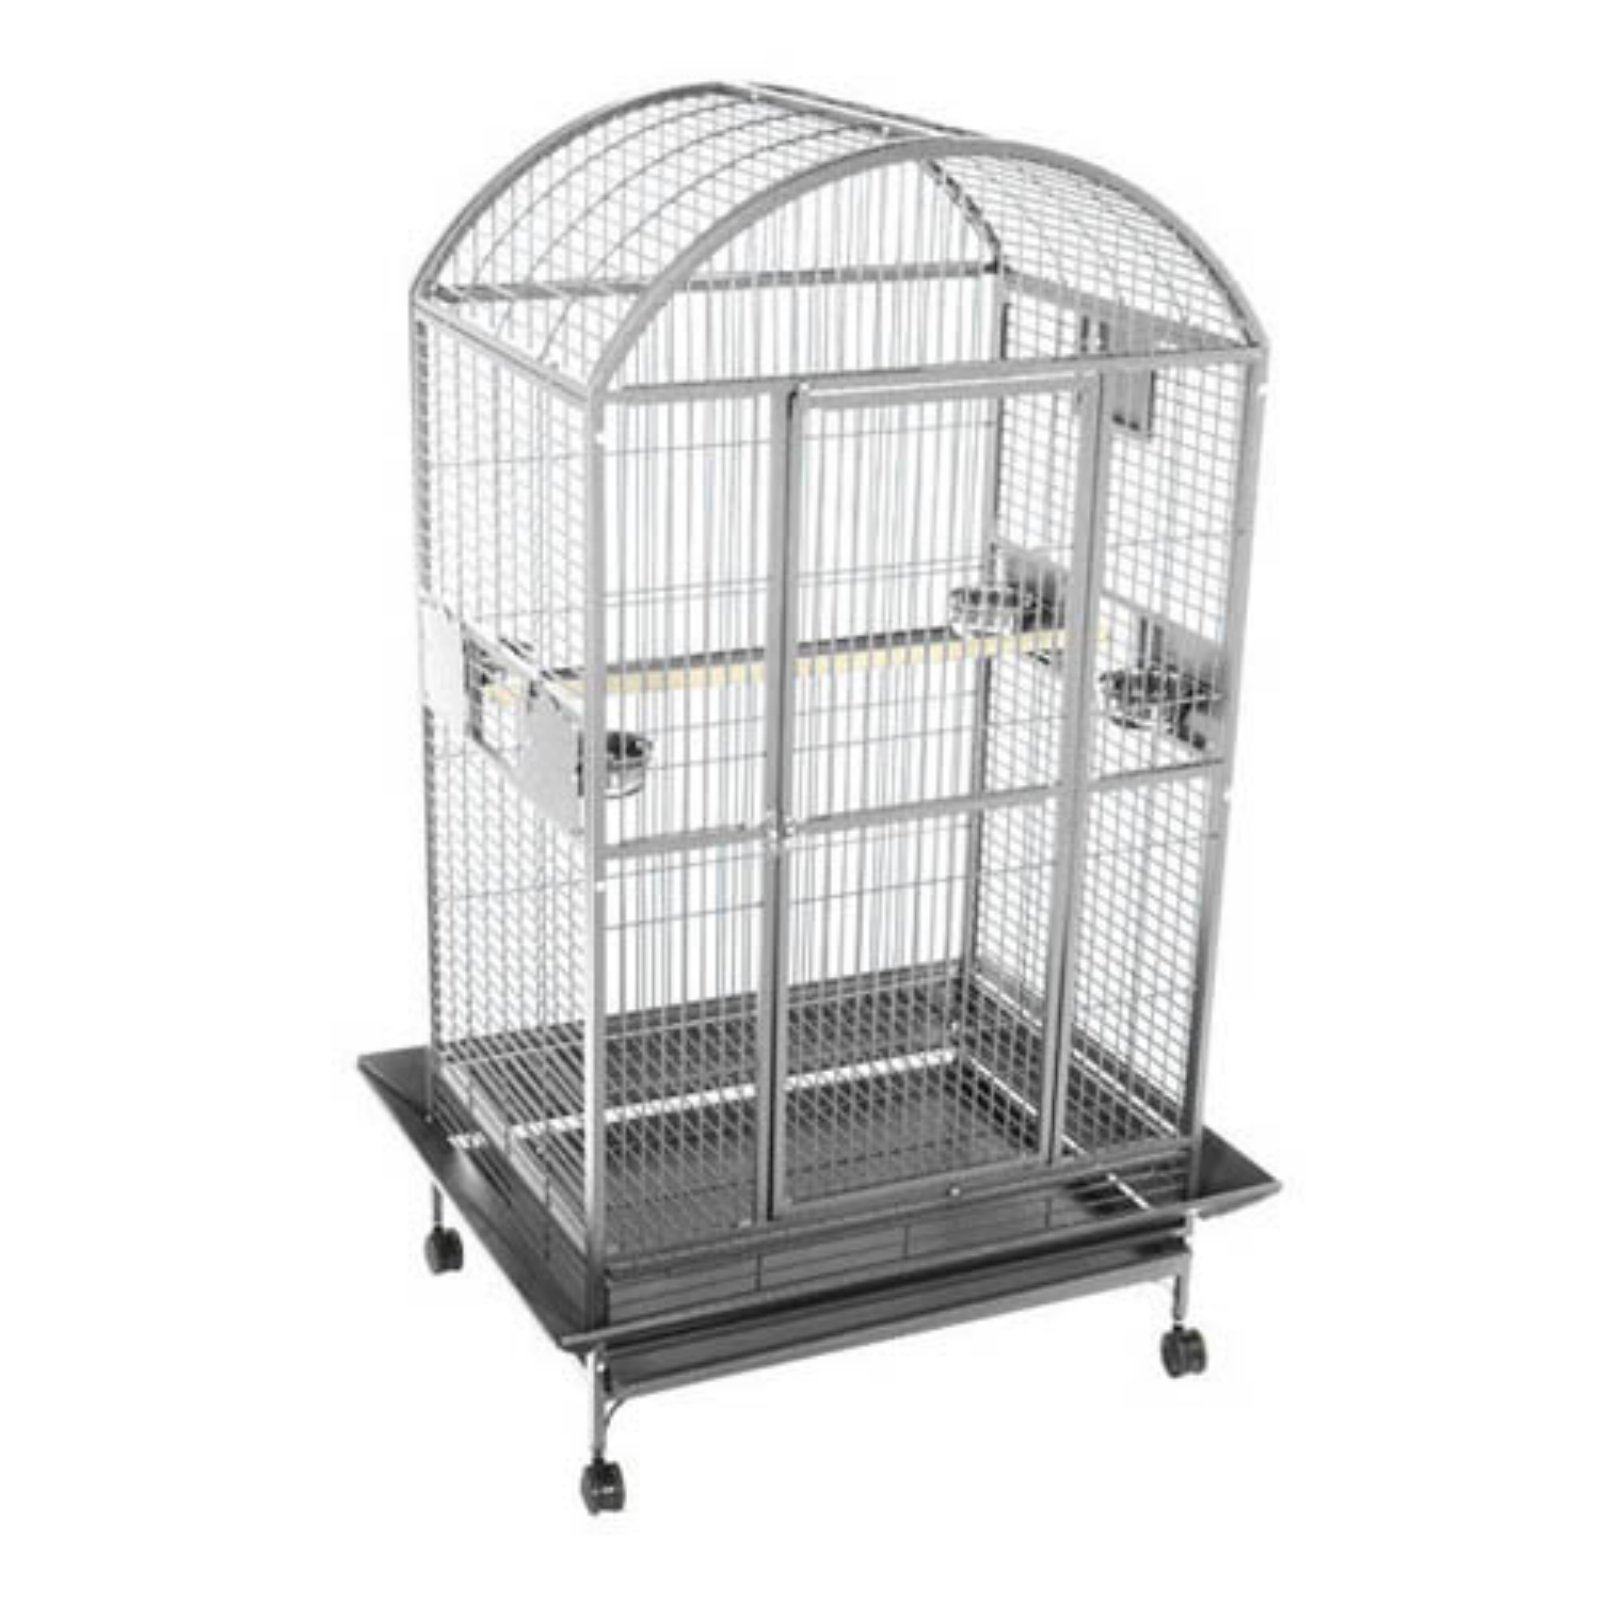 A and E Cage Co. Giant Dometop Bird Cage 9004030 by A and E Cage Co LLC